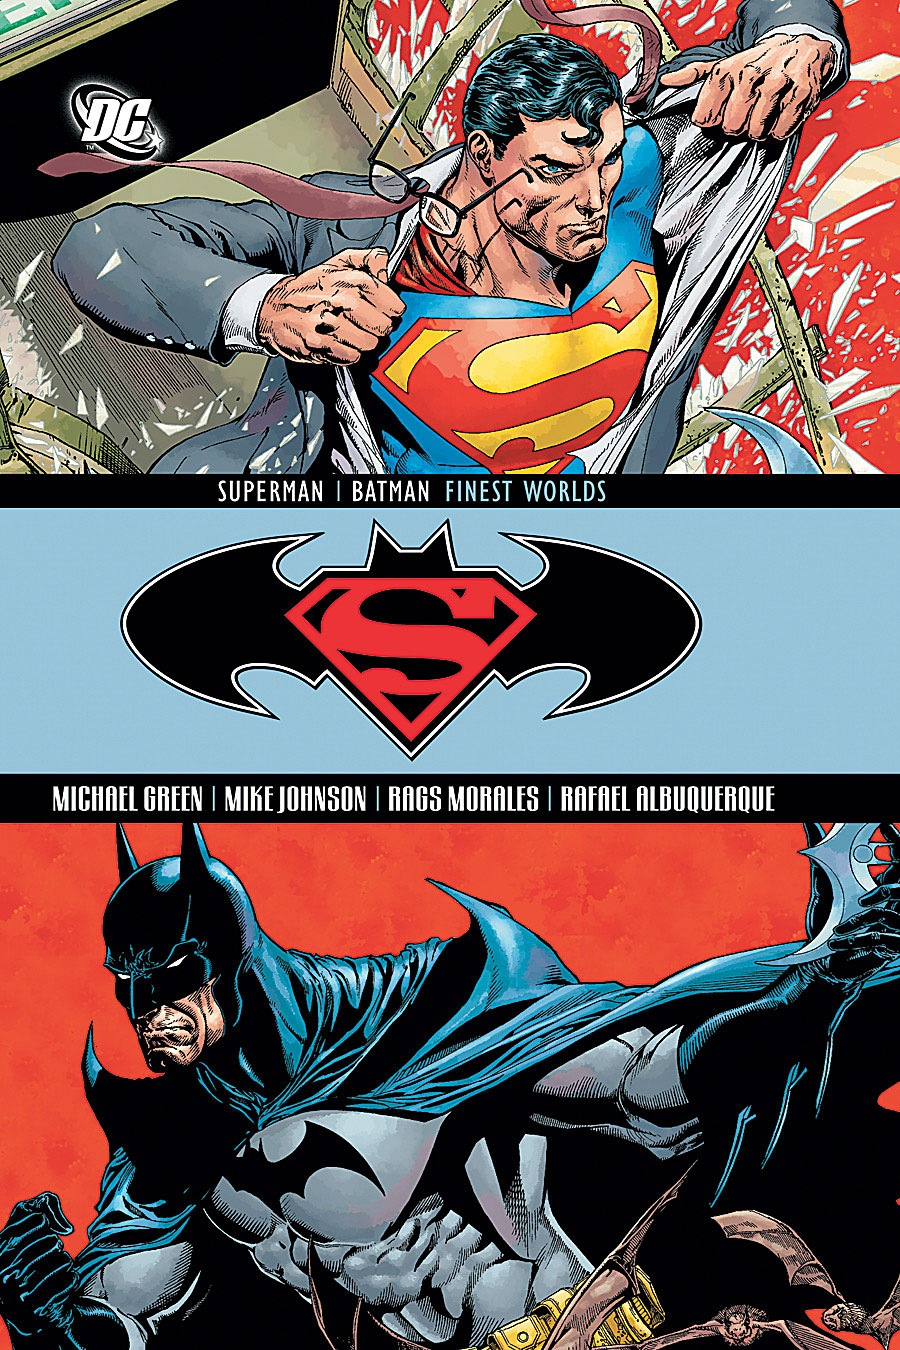 Superman Batman Finest Worlds